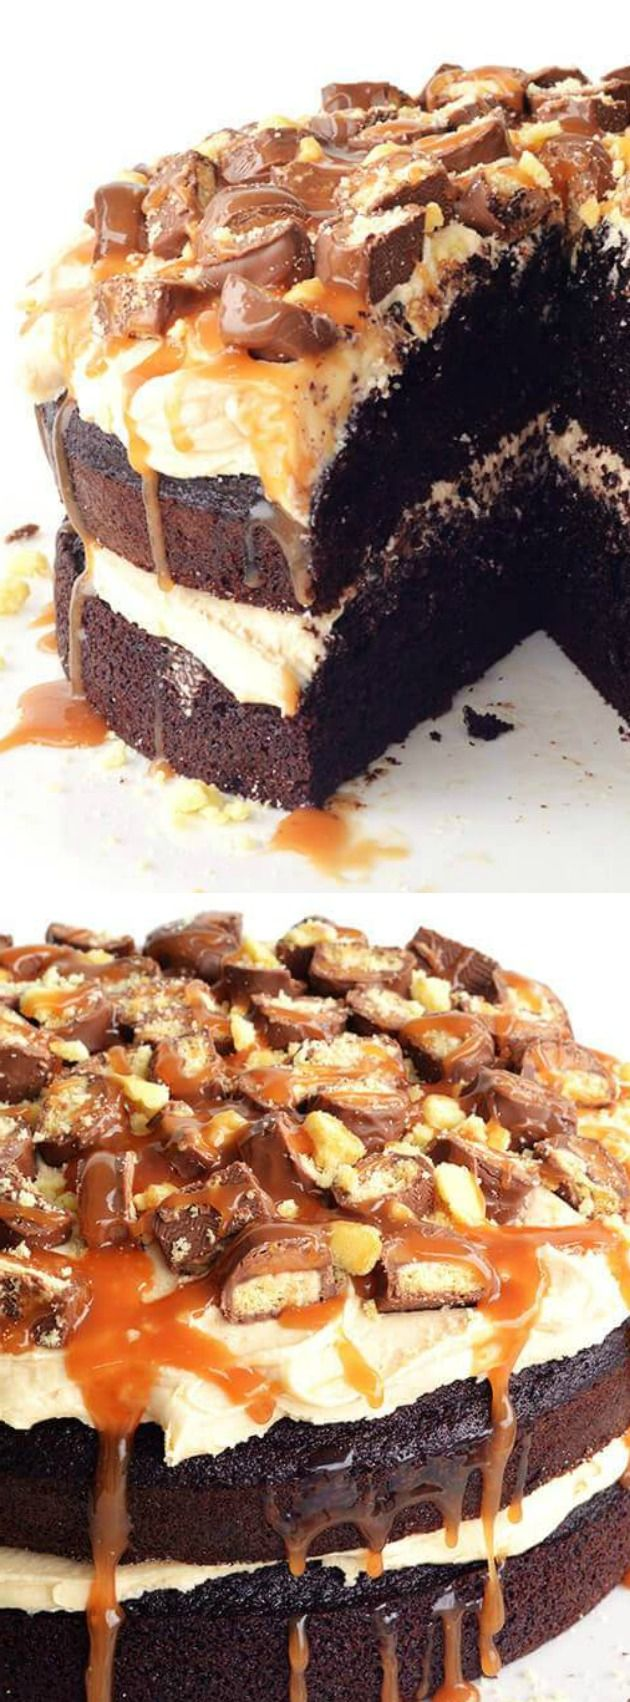 Twix Chocolate Layer Cake from Sweetest Menu is a cake with two decadent chocolate layers separated by smooth caramel frosting and is topped with a mixture of chopped Twix bars, crumbled shortbread cookies, and a sweet caramel sauce.